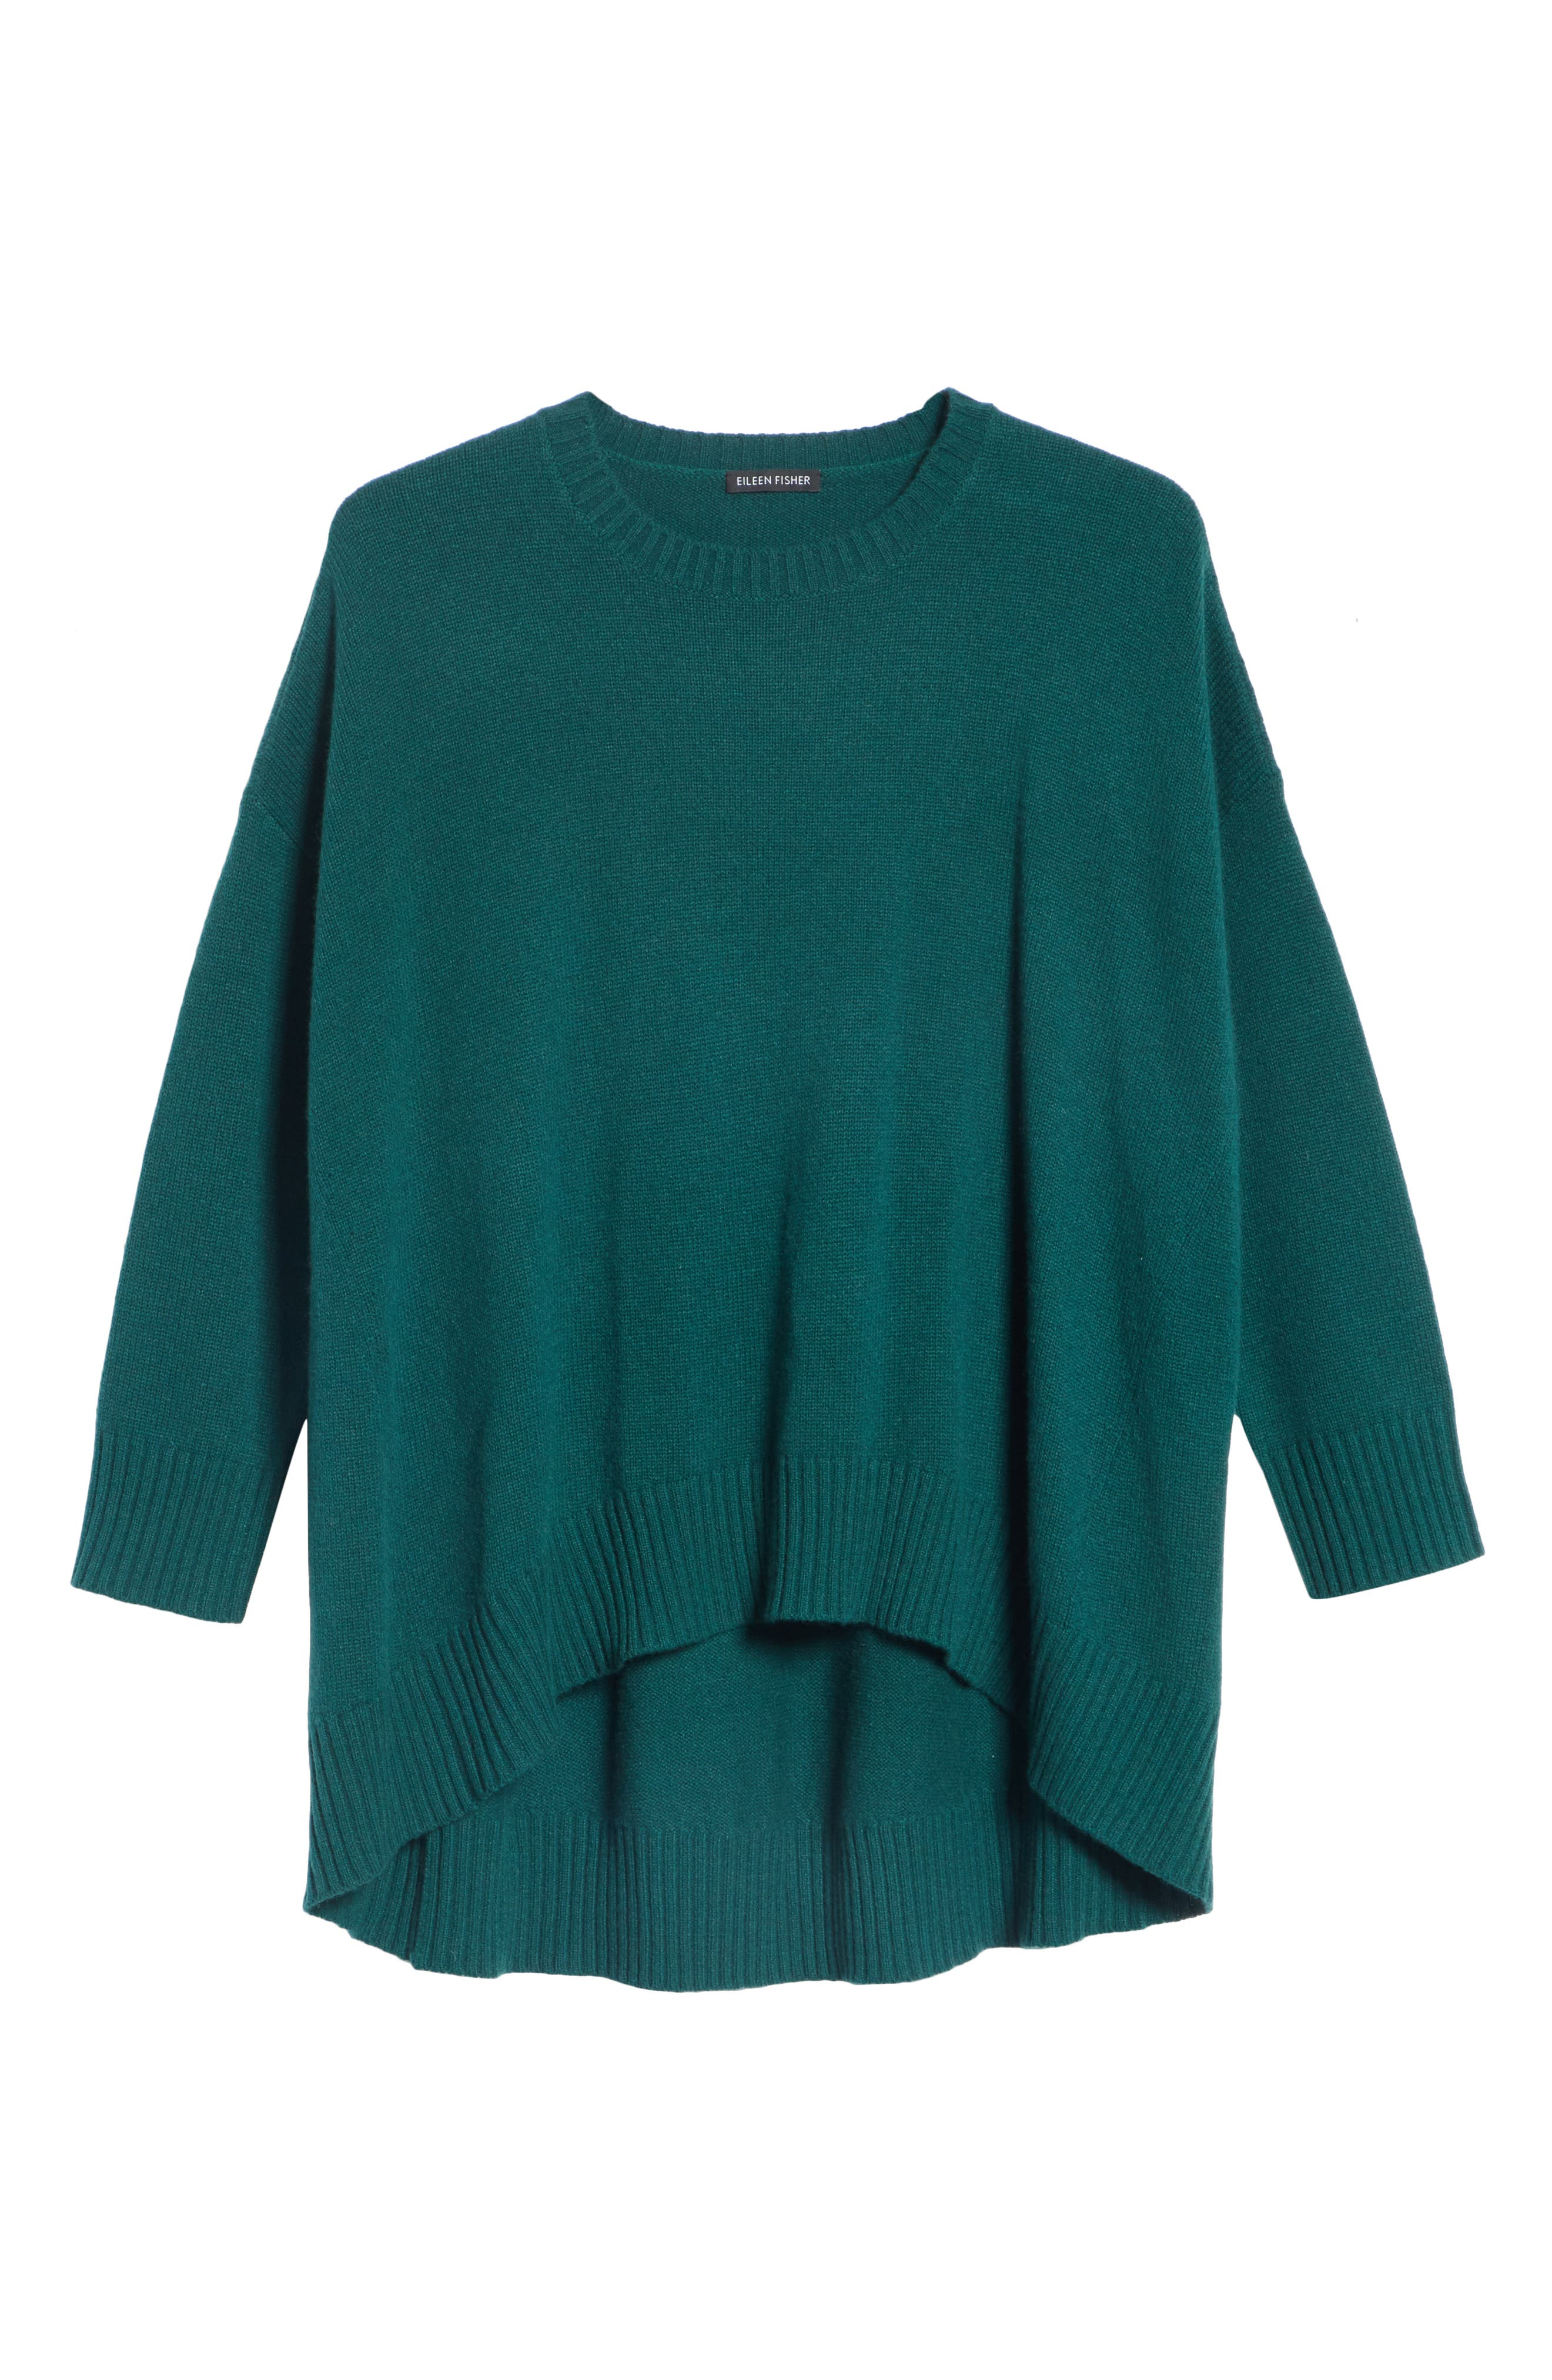 Cashmere & Wool Blend Oversize Sweater,                             Alternate thumbnail 6, color,                             PINE